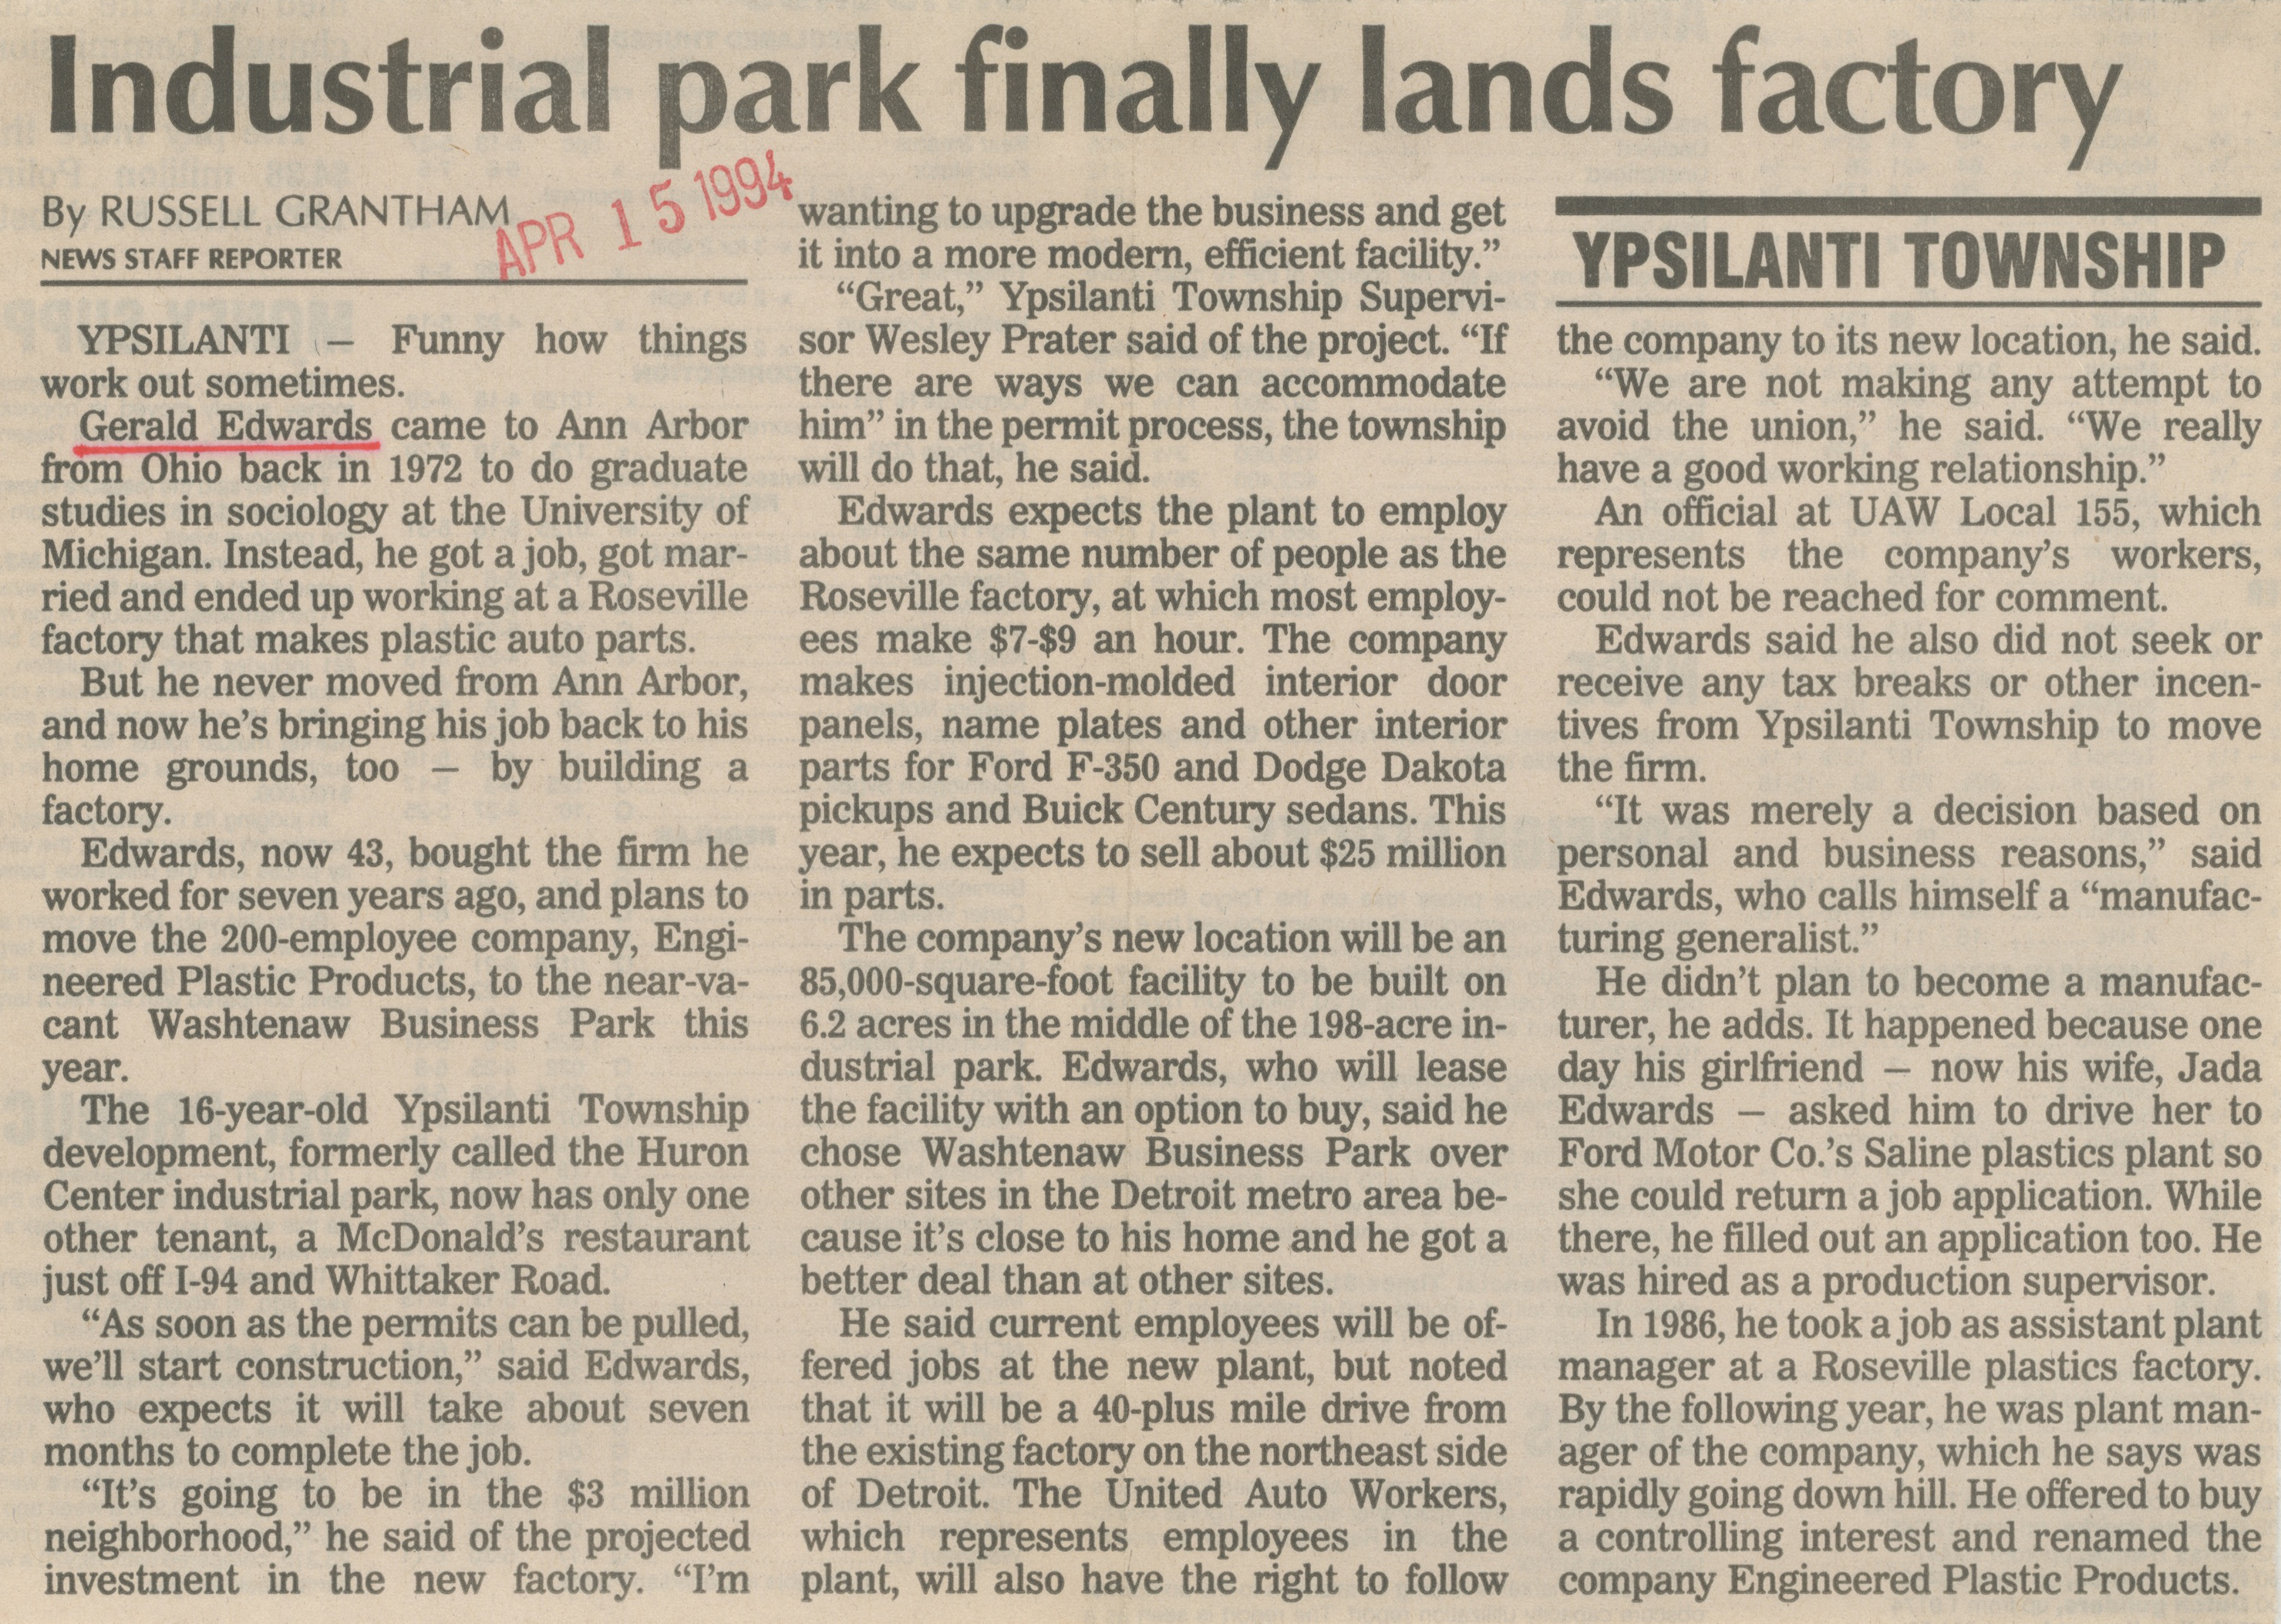 Industrial Park Finally Lands Factory image